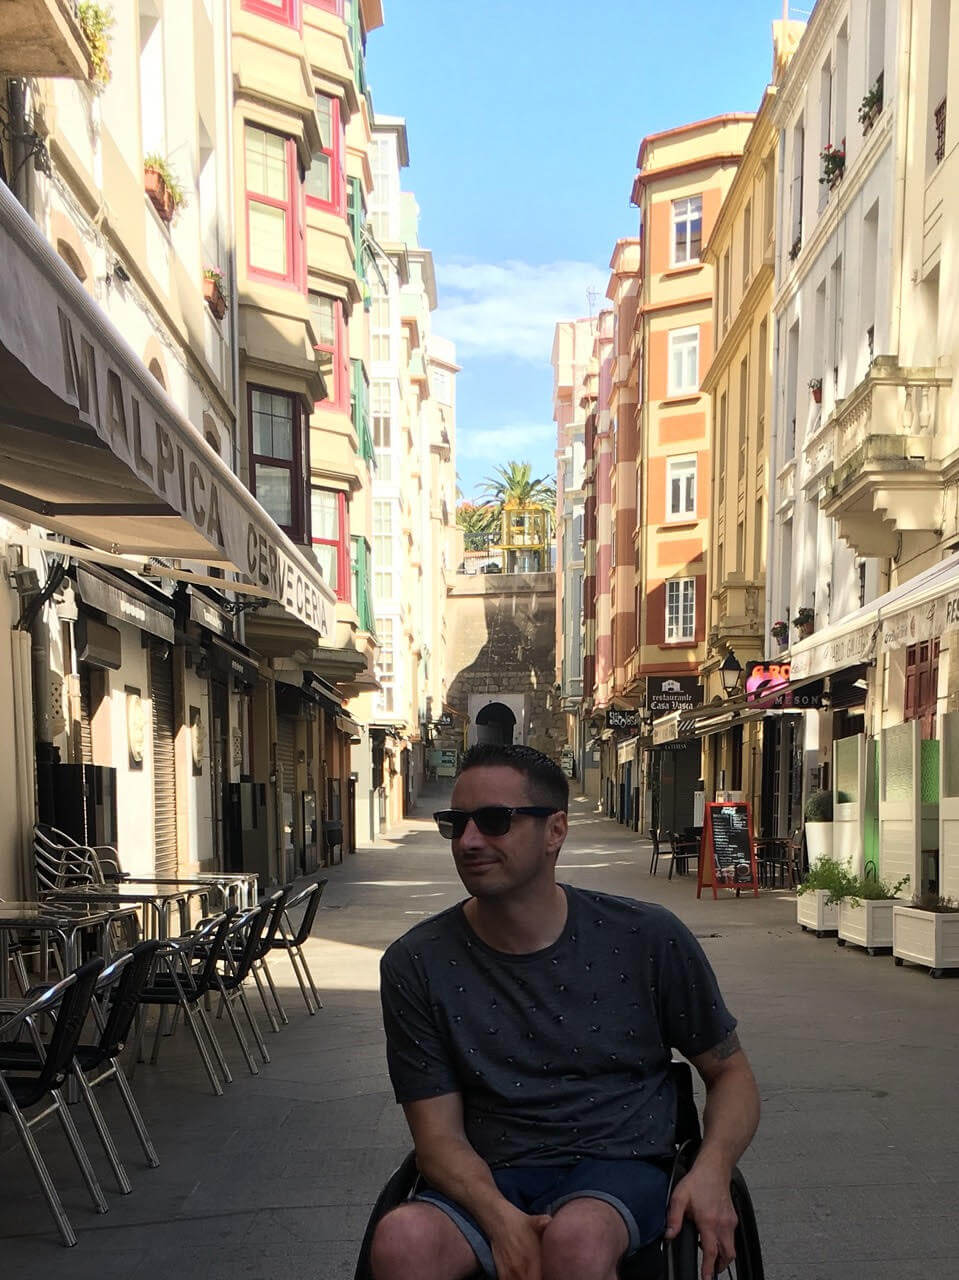 Steve exploring the streets of La Coruña.